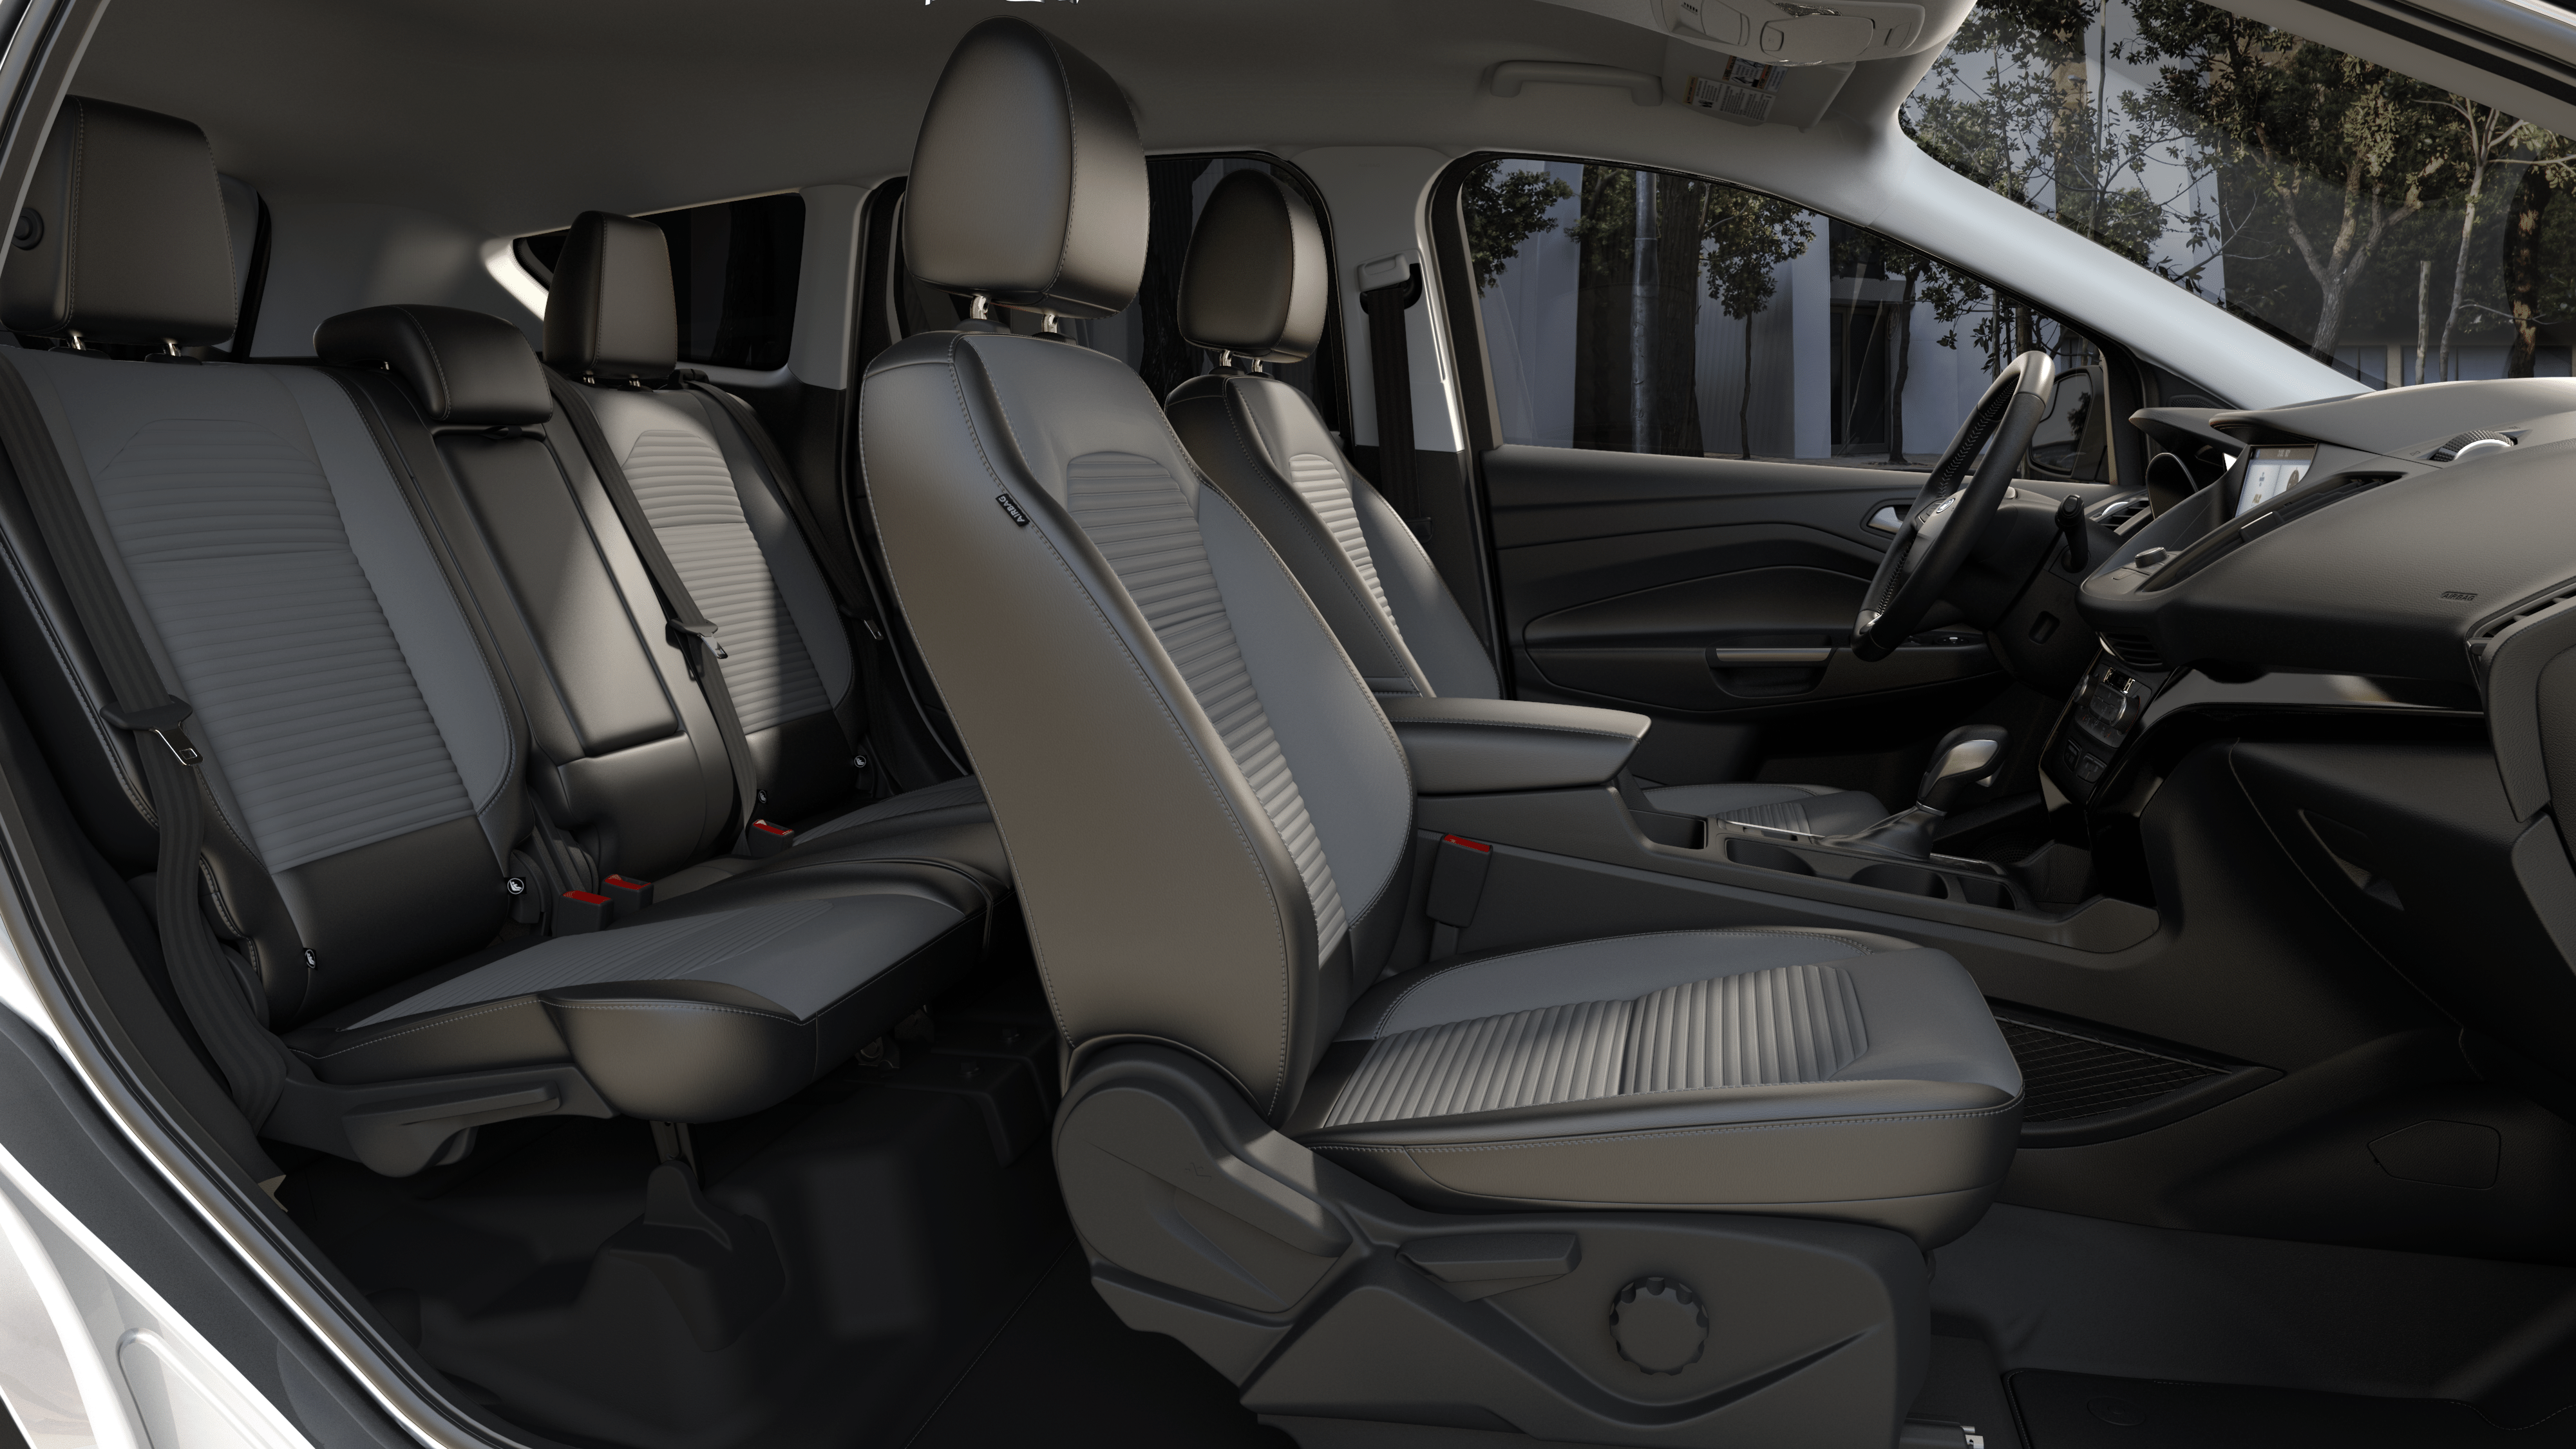 2019 ford escape for sale in natrona heights 1fmcu9gd9kua14761 cochran ford. Black Bedroom Furniture Sets. Home Design Ideas